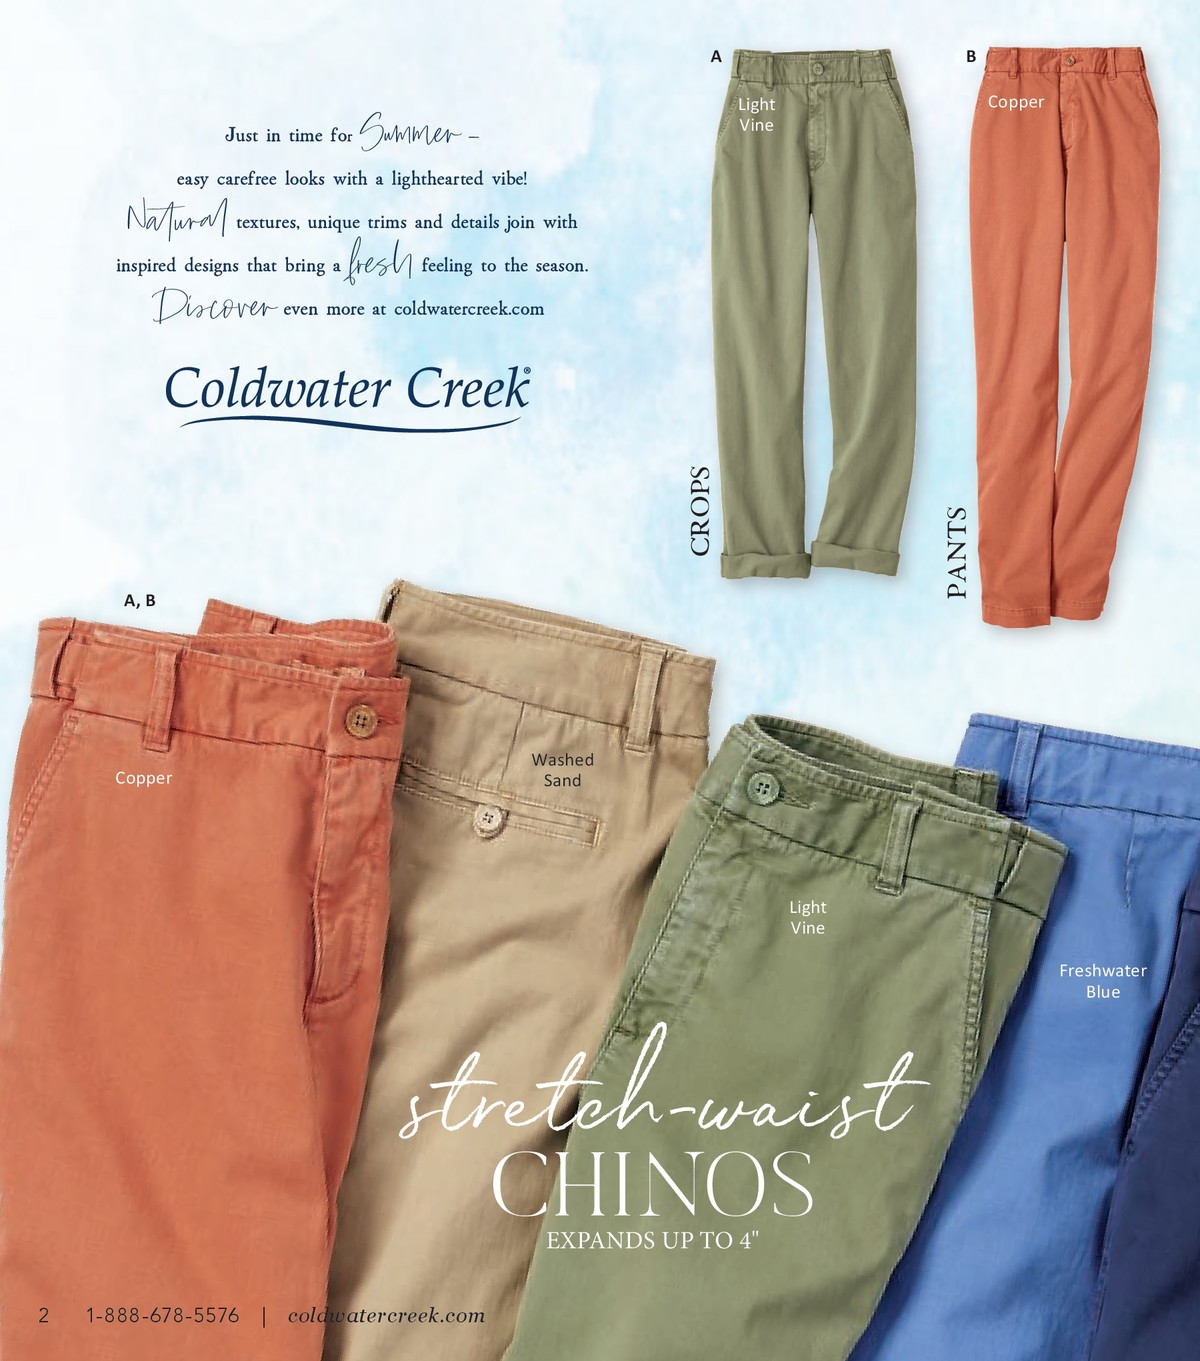 Coldwater Creek Catalog Phone Number